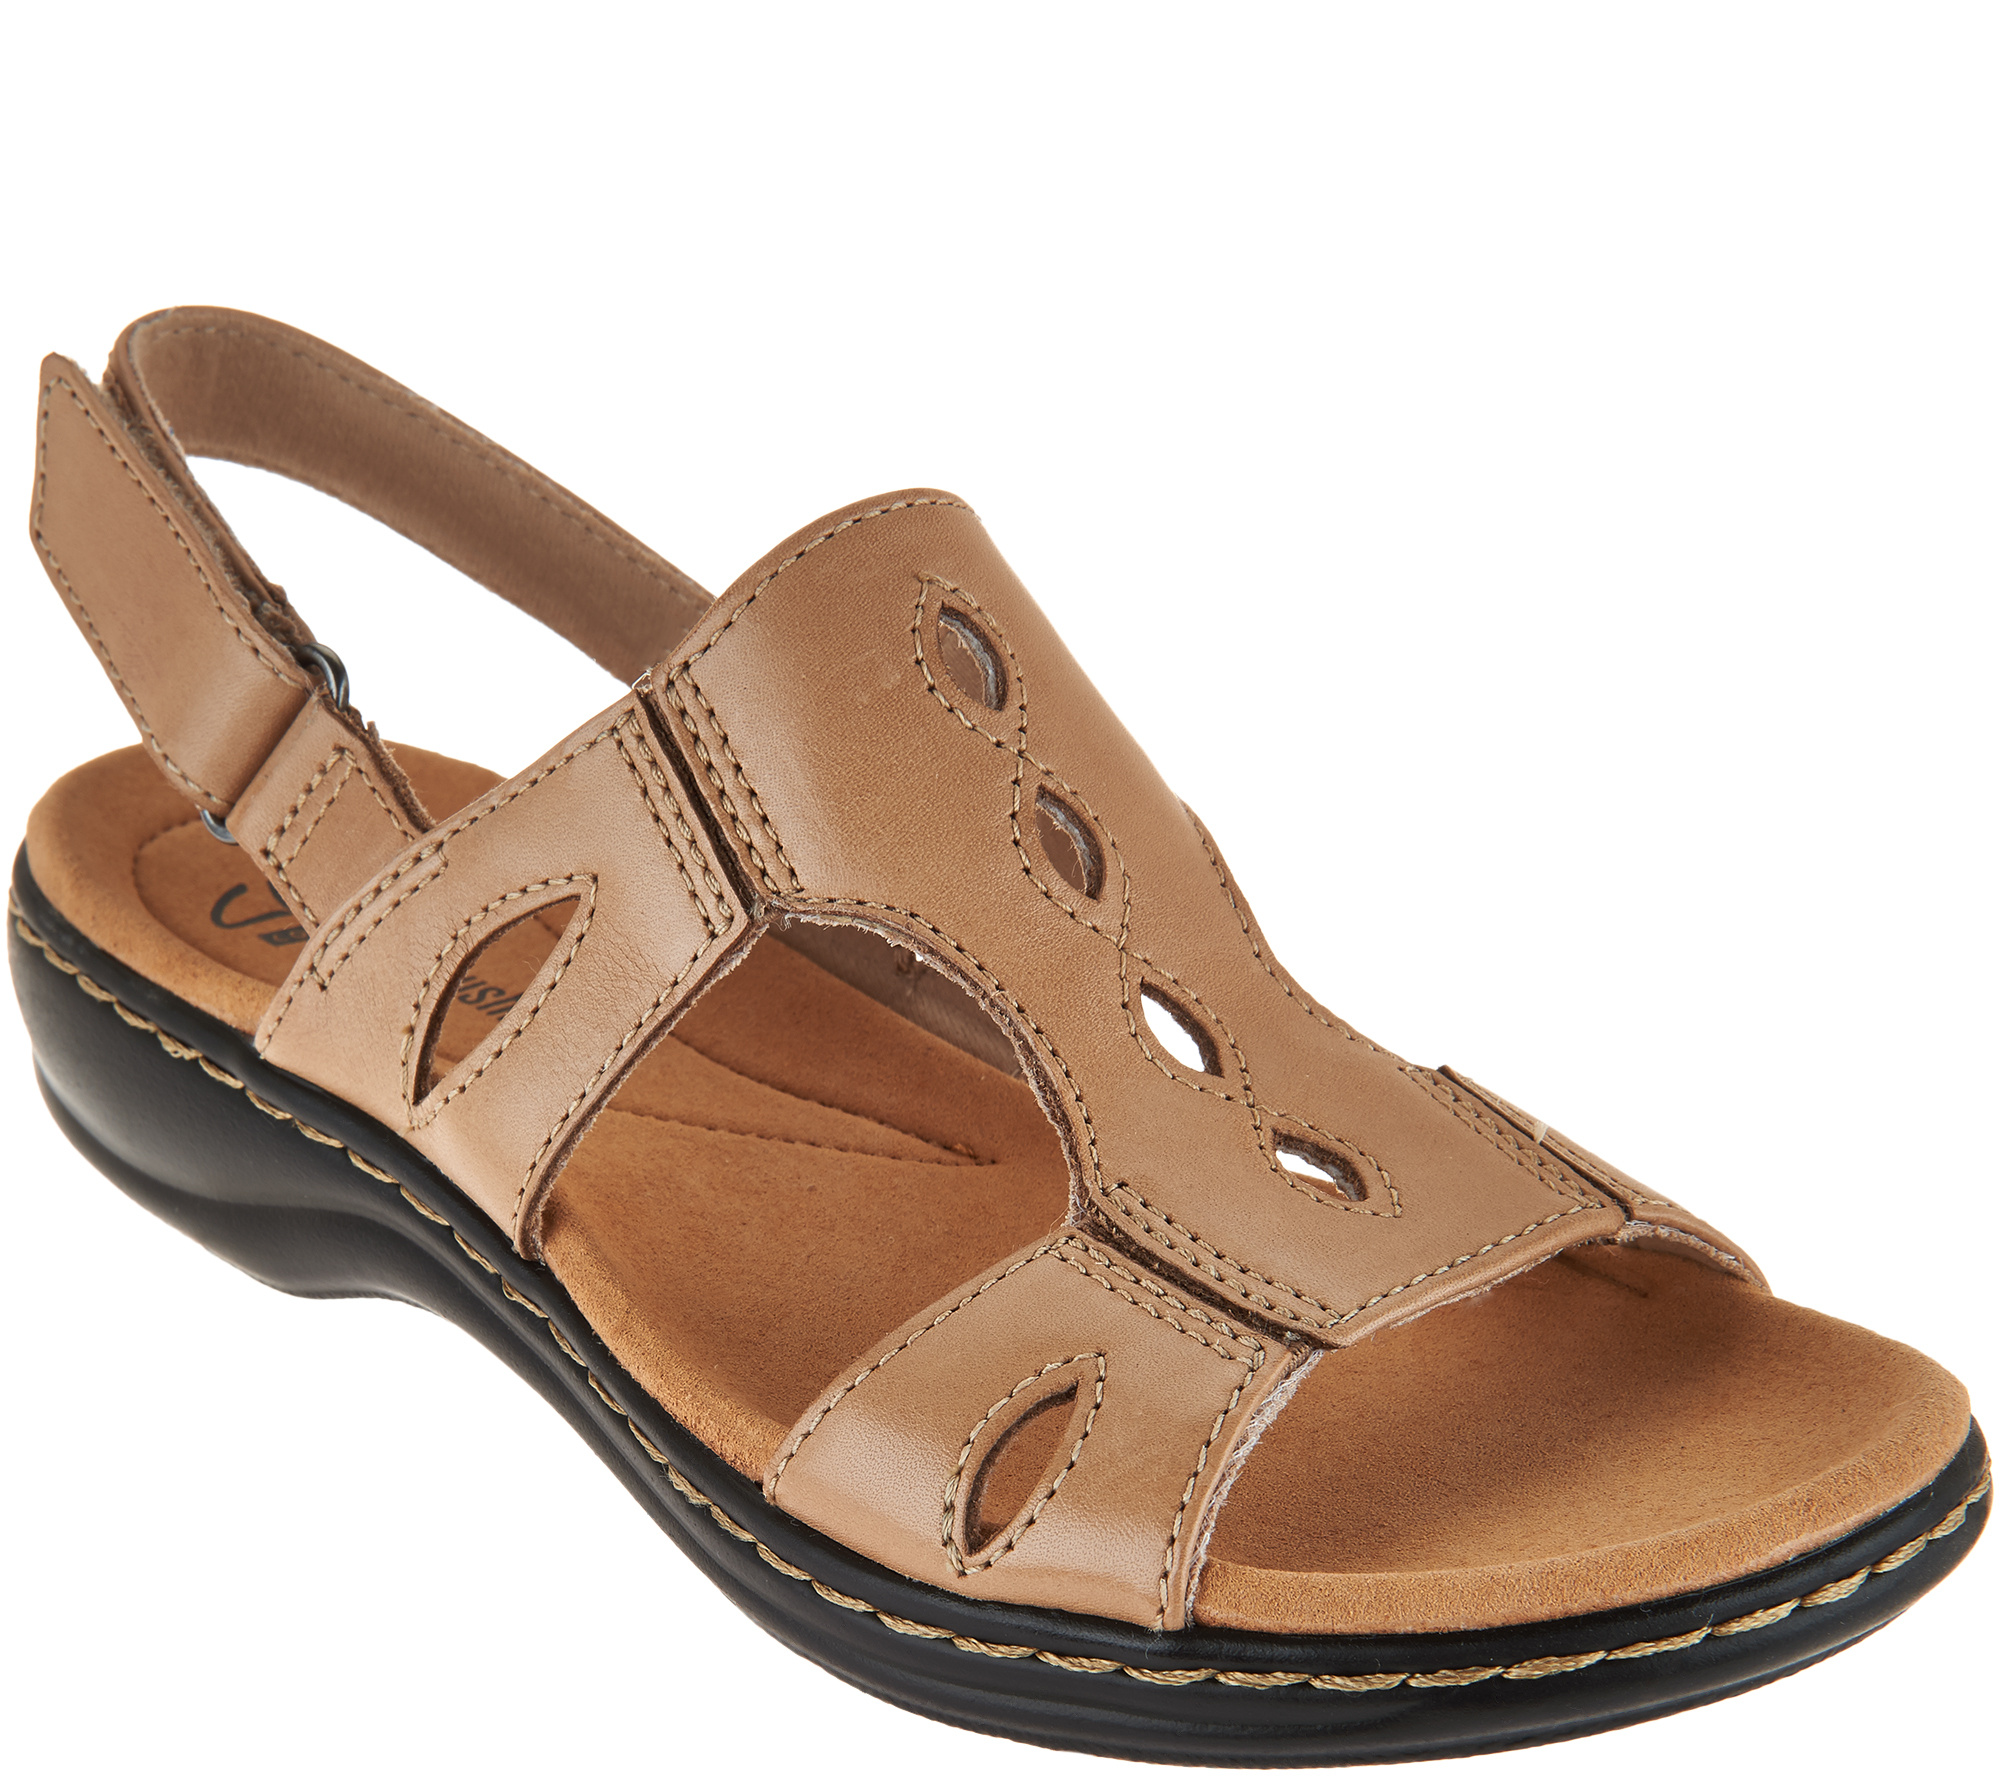 Clarks Leather Lightweight Sandals - Leisa Lakelyn